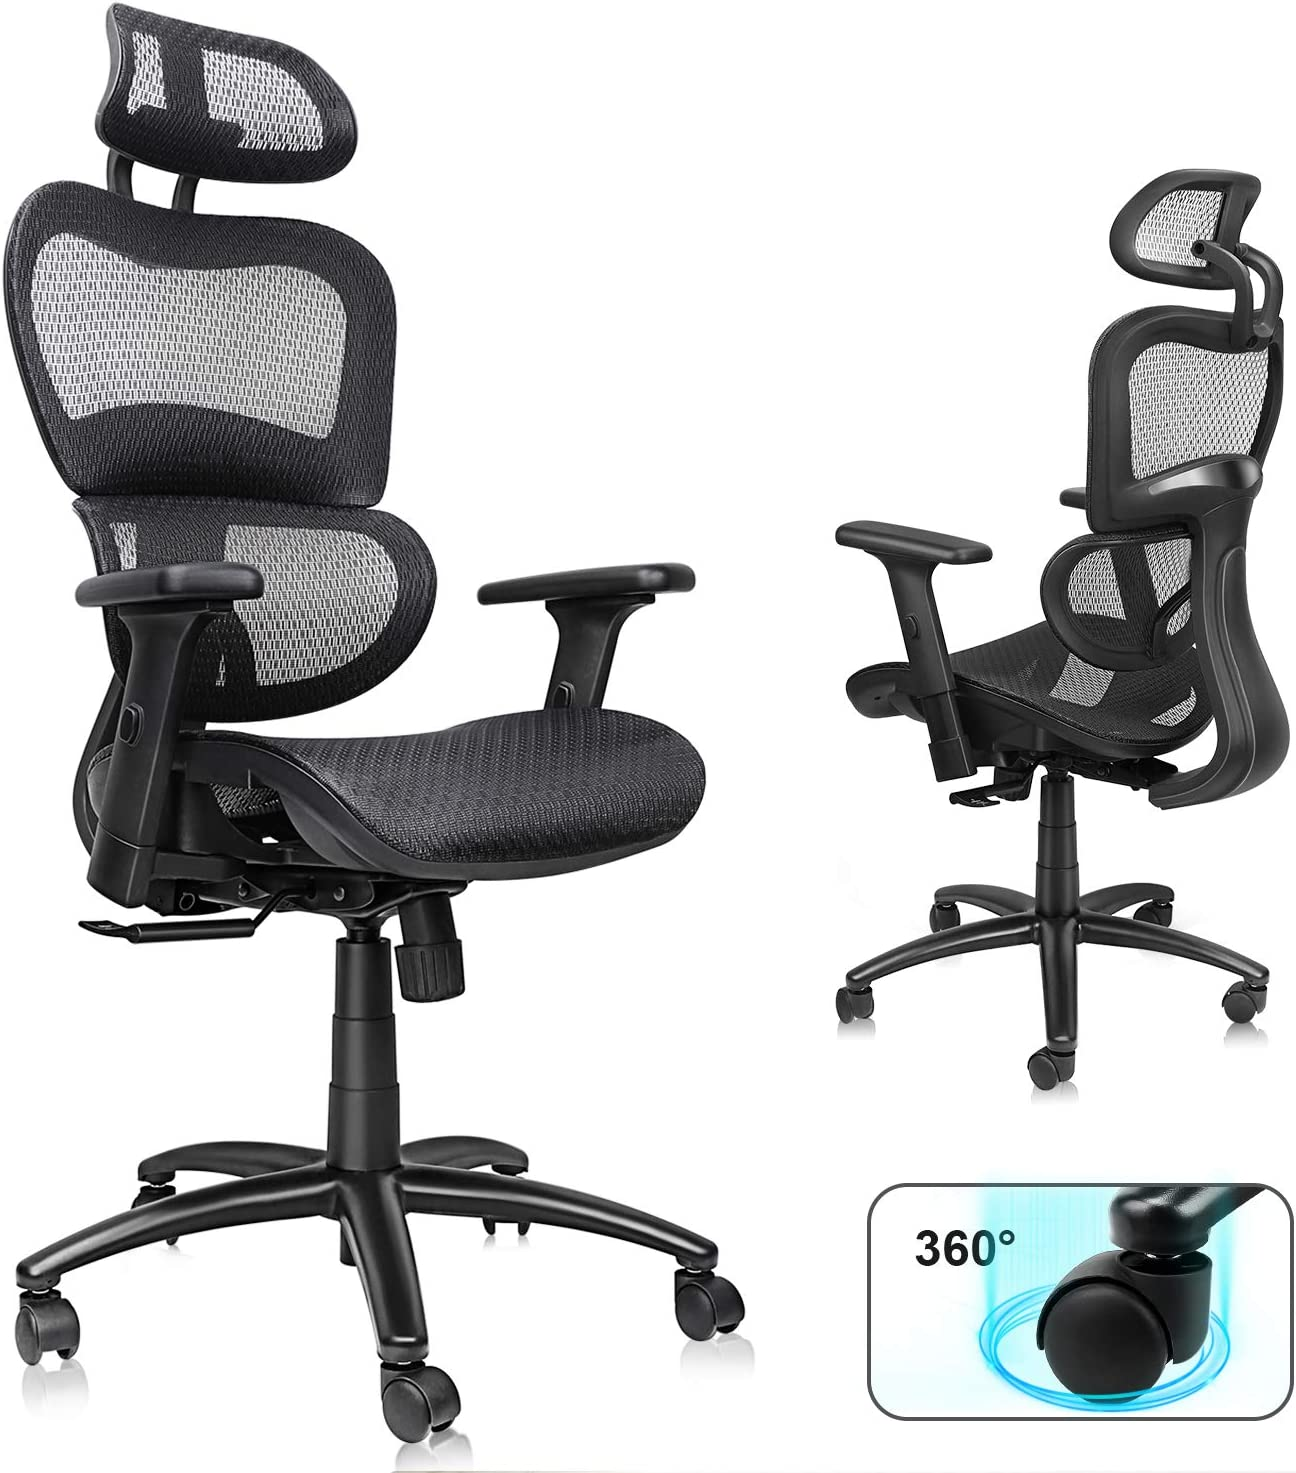 Amazon Com Ergonomic Mesh Office Chair High Back Desk Chair With Adjustable Headrest And 3d Armrests Technical Task Executive Chair With Adjustable Lumbar Support Swivel Chair For Home Office Black Kitchen